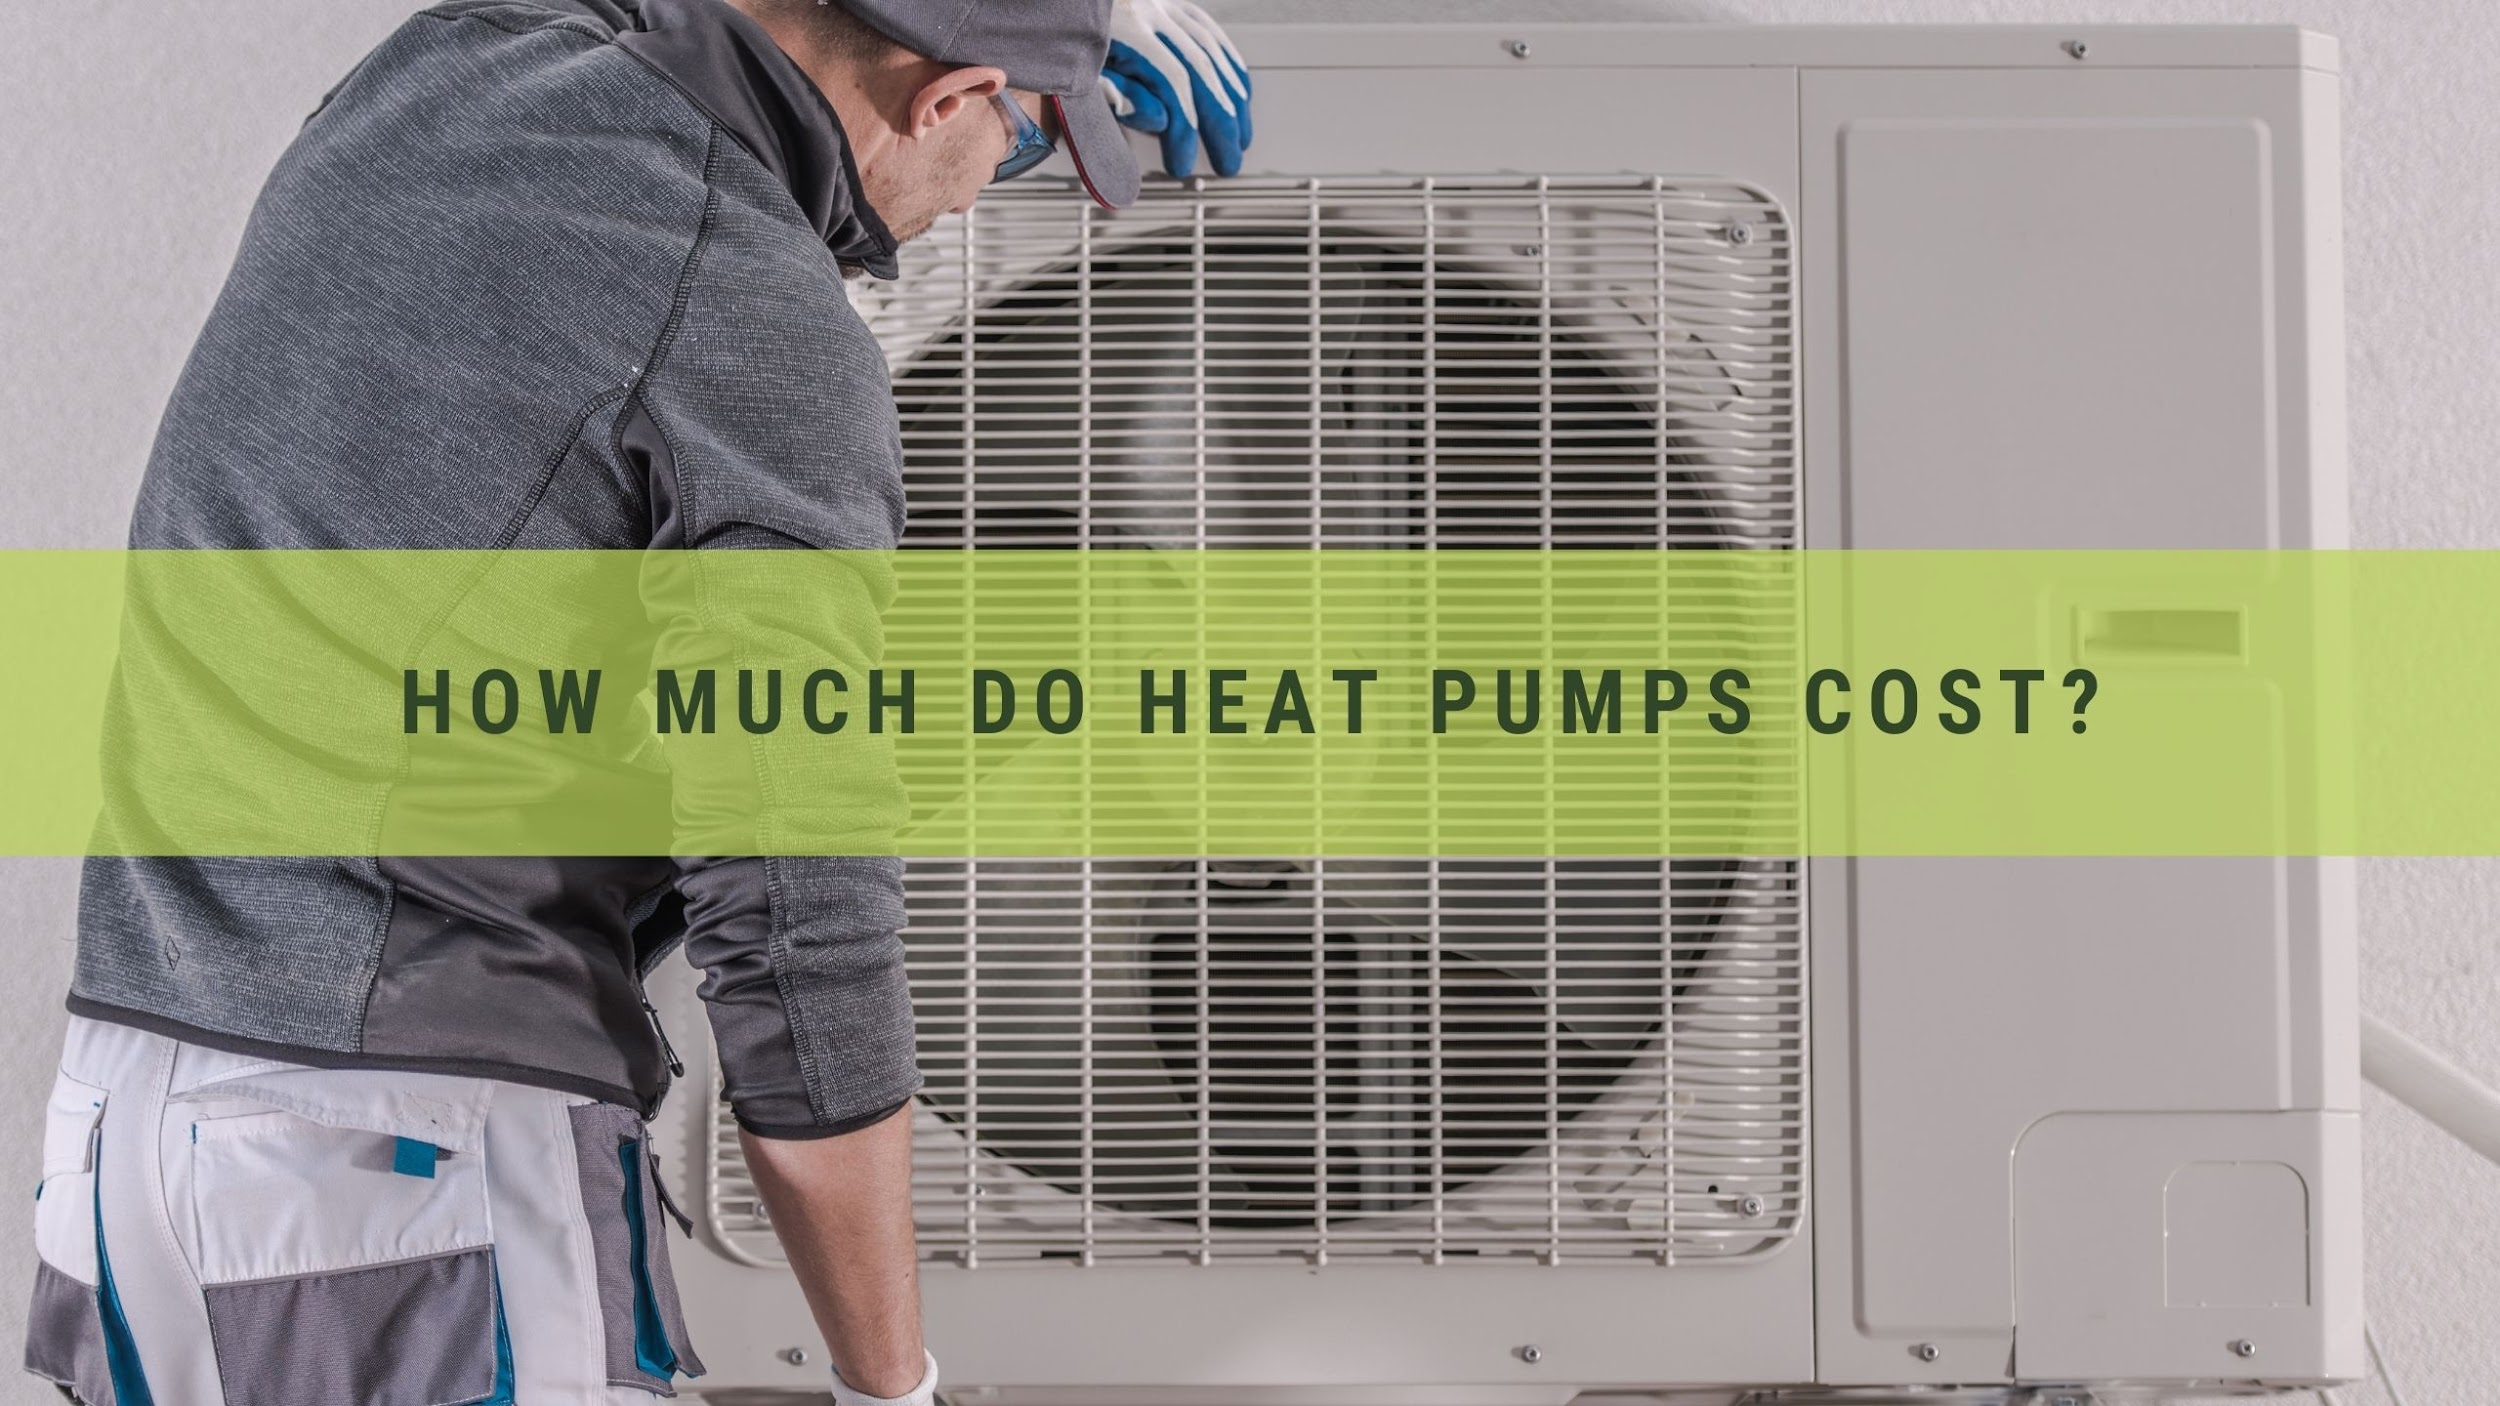 how much do heat pumps cost?